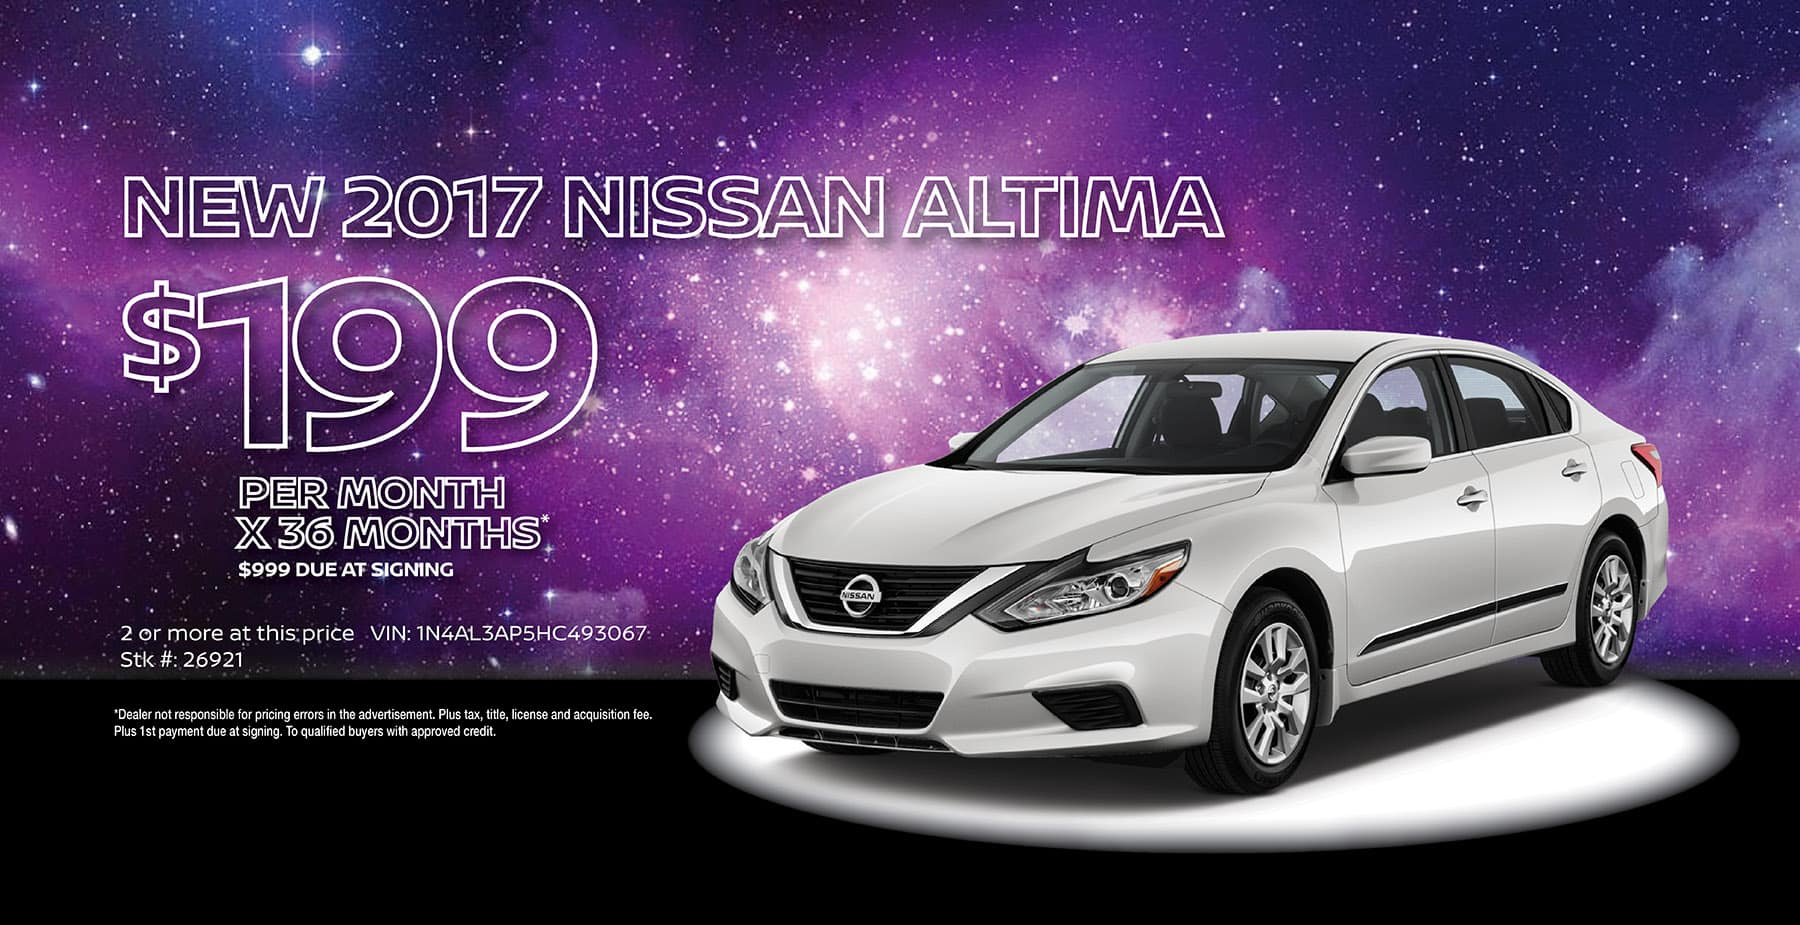 2017 Nissan Altima December Holiday Sale at Star Nissan